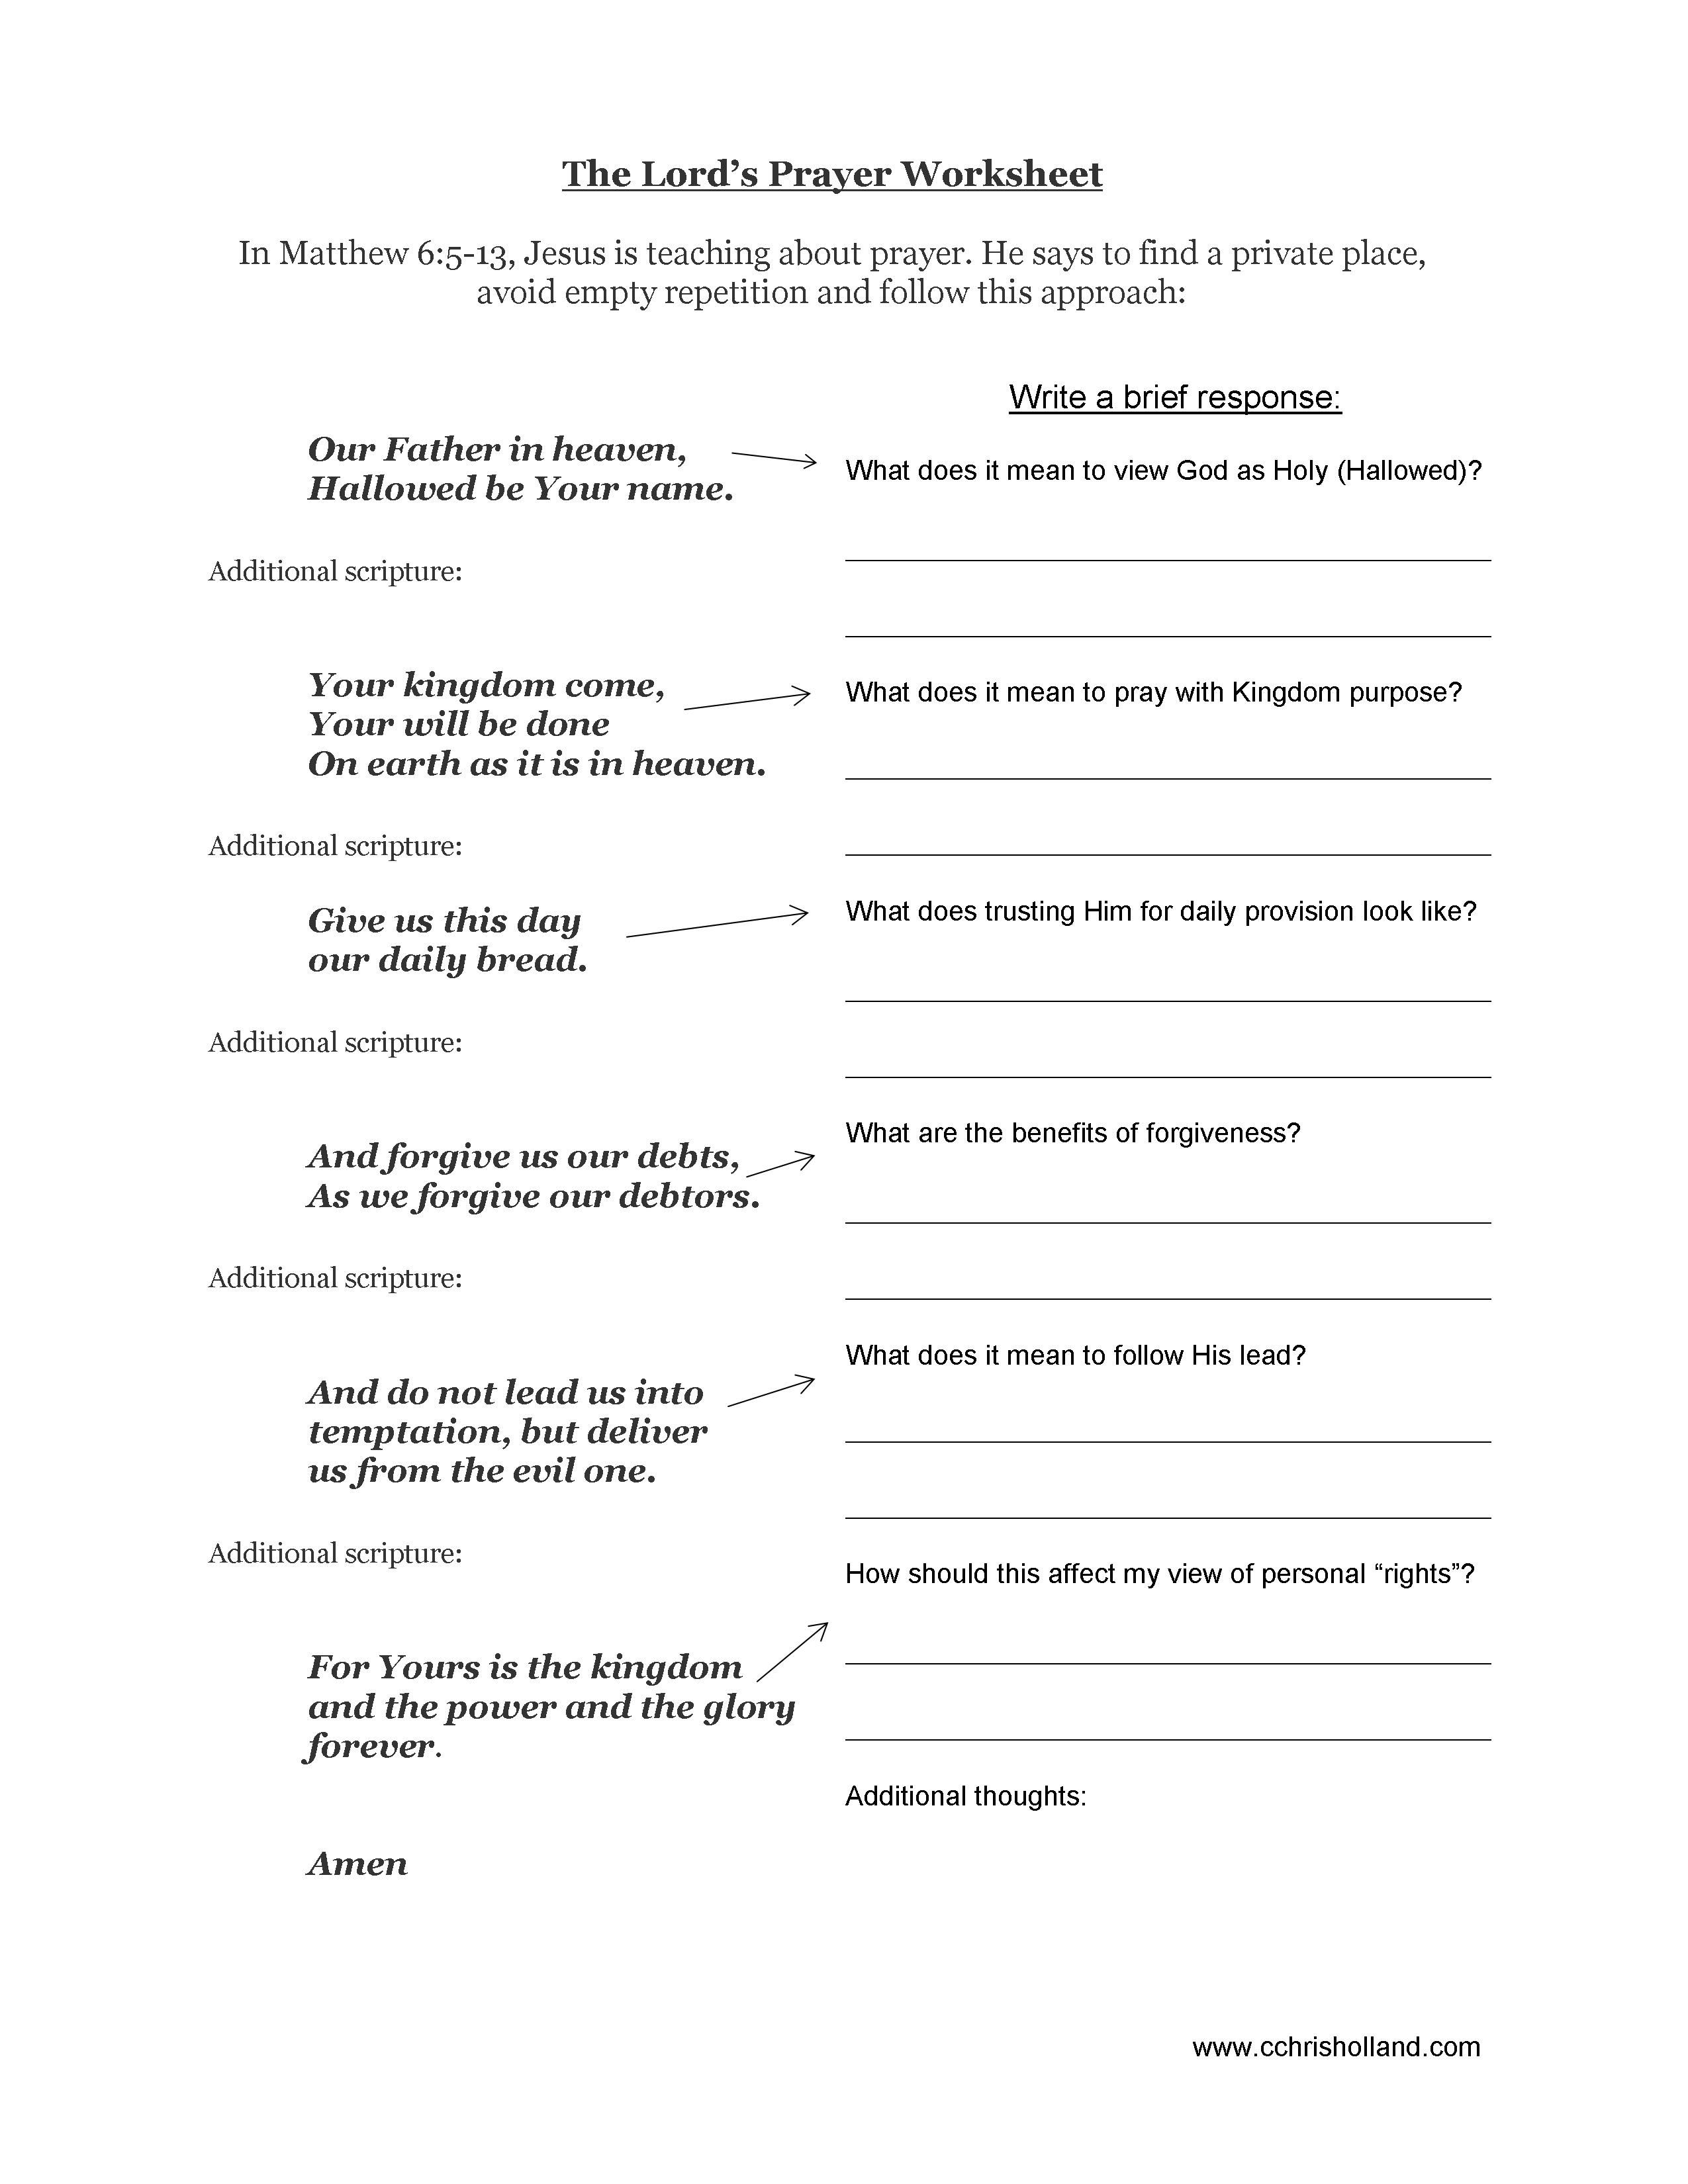 Worksheets Bible Worksheets For Adults the lords prayer worsheet relationship pinterest lord bible worsheet